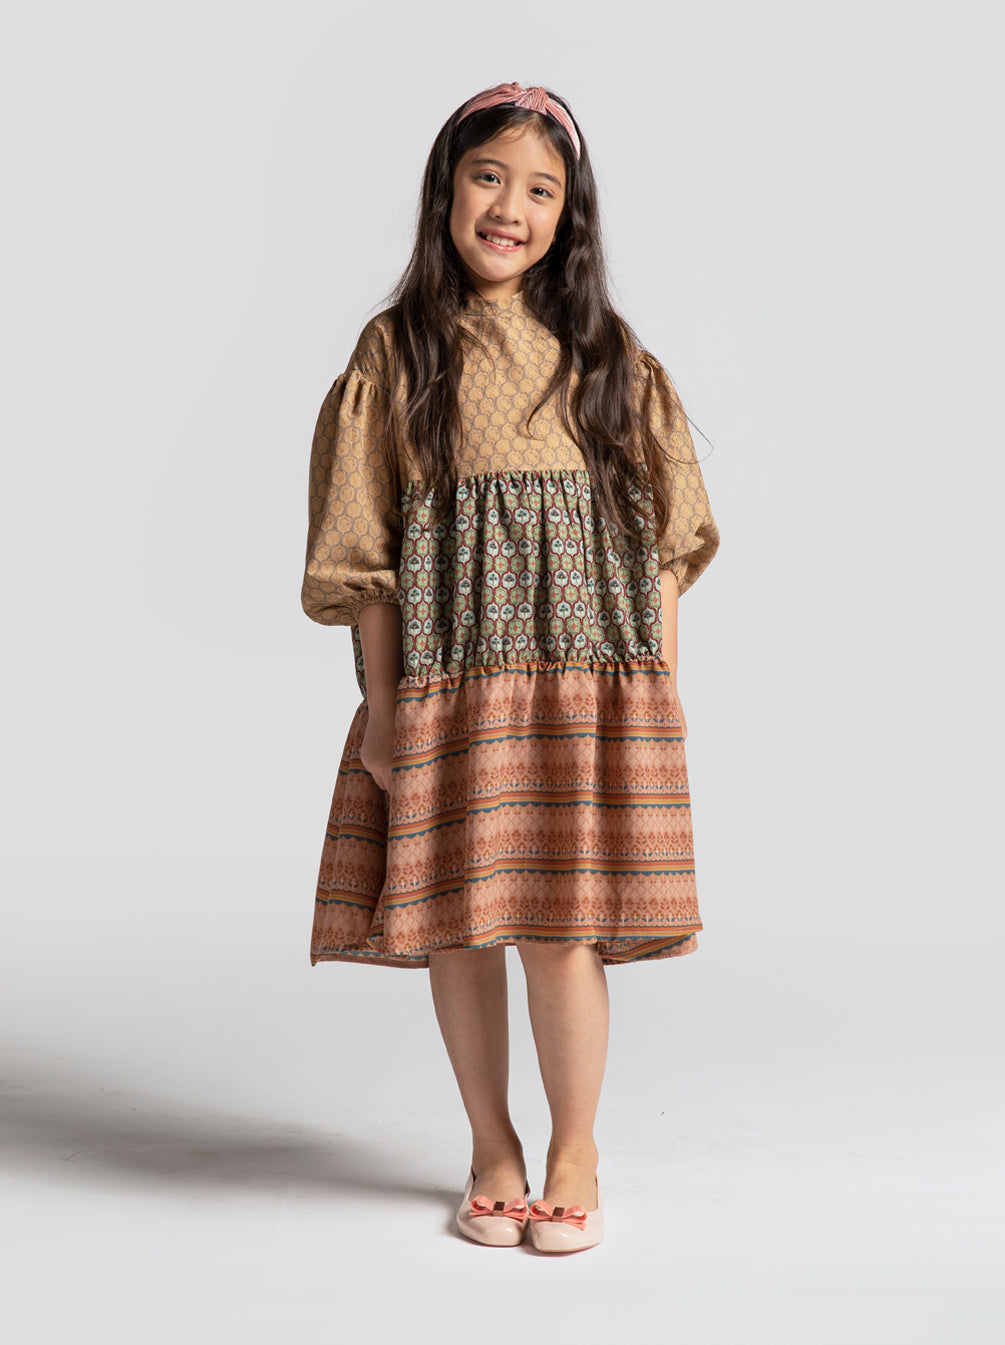 [PRE-ORDER] KIYA DRESS KIDS LIGHT SAND